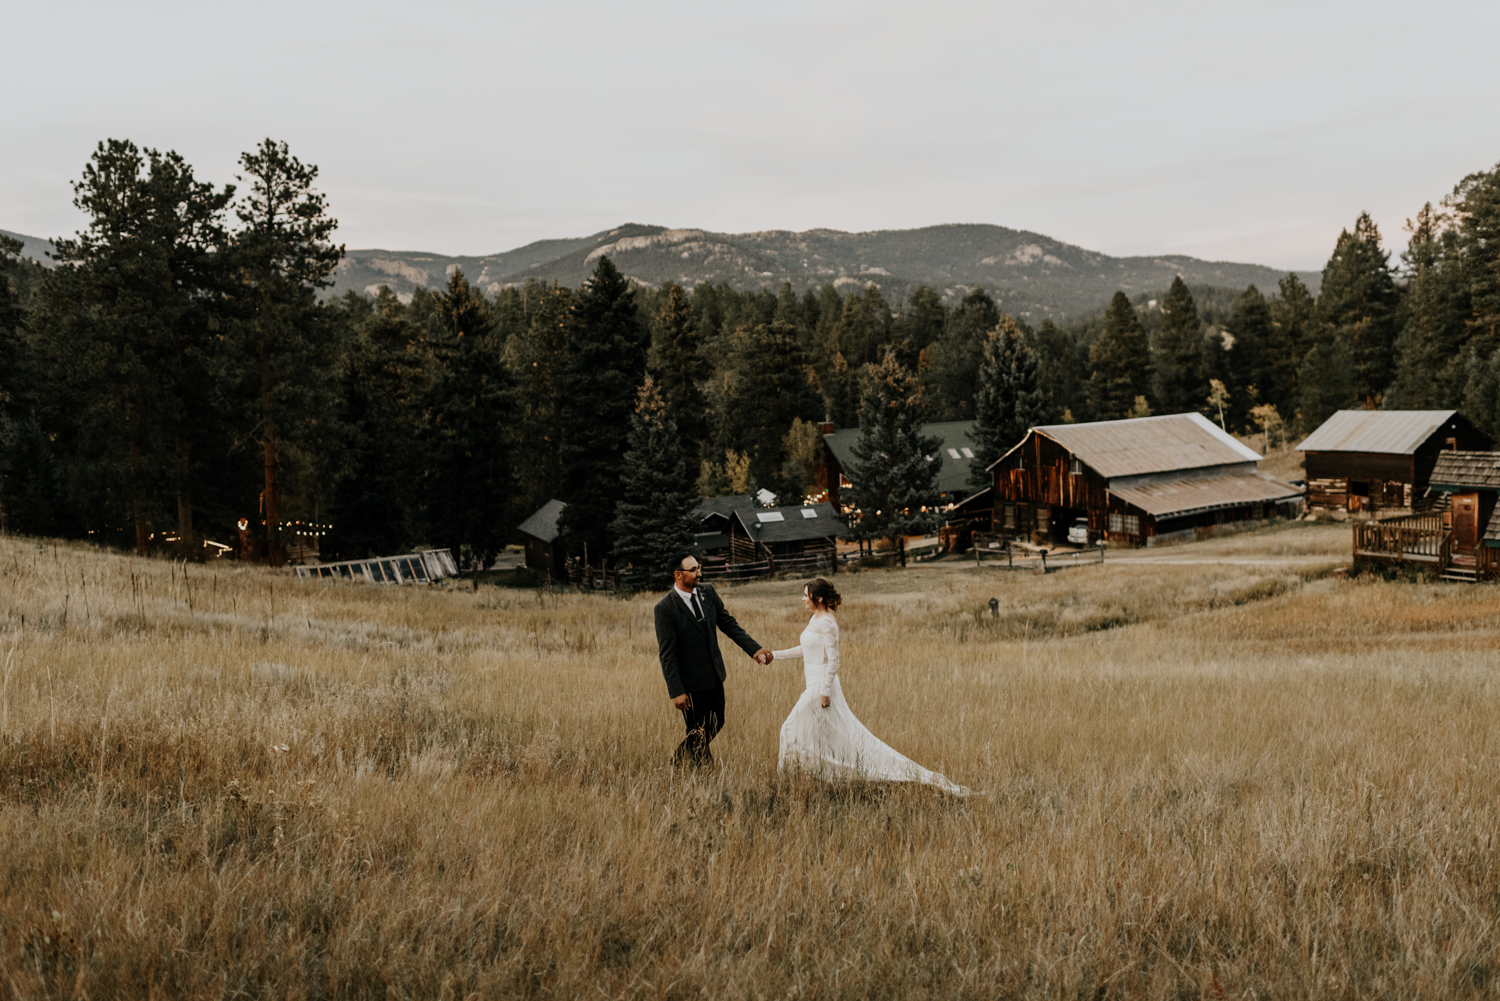 Intimate Mountain Wedding Photographer, Meadow Creek, Pine ColoradIntimate Mountain Wedding Photographer, Meadow Creek, Pine Colorado